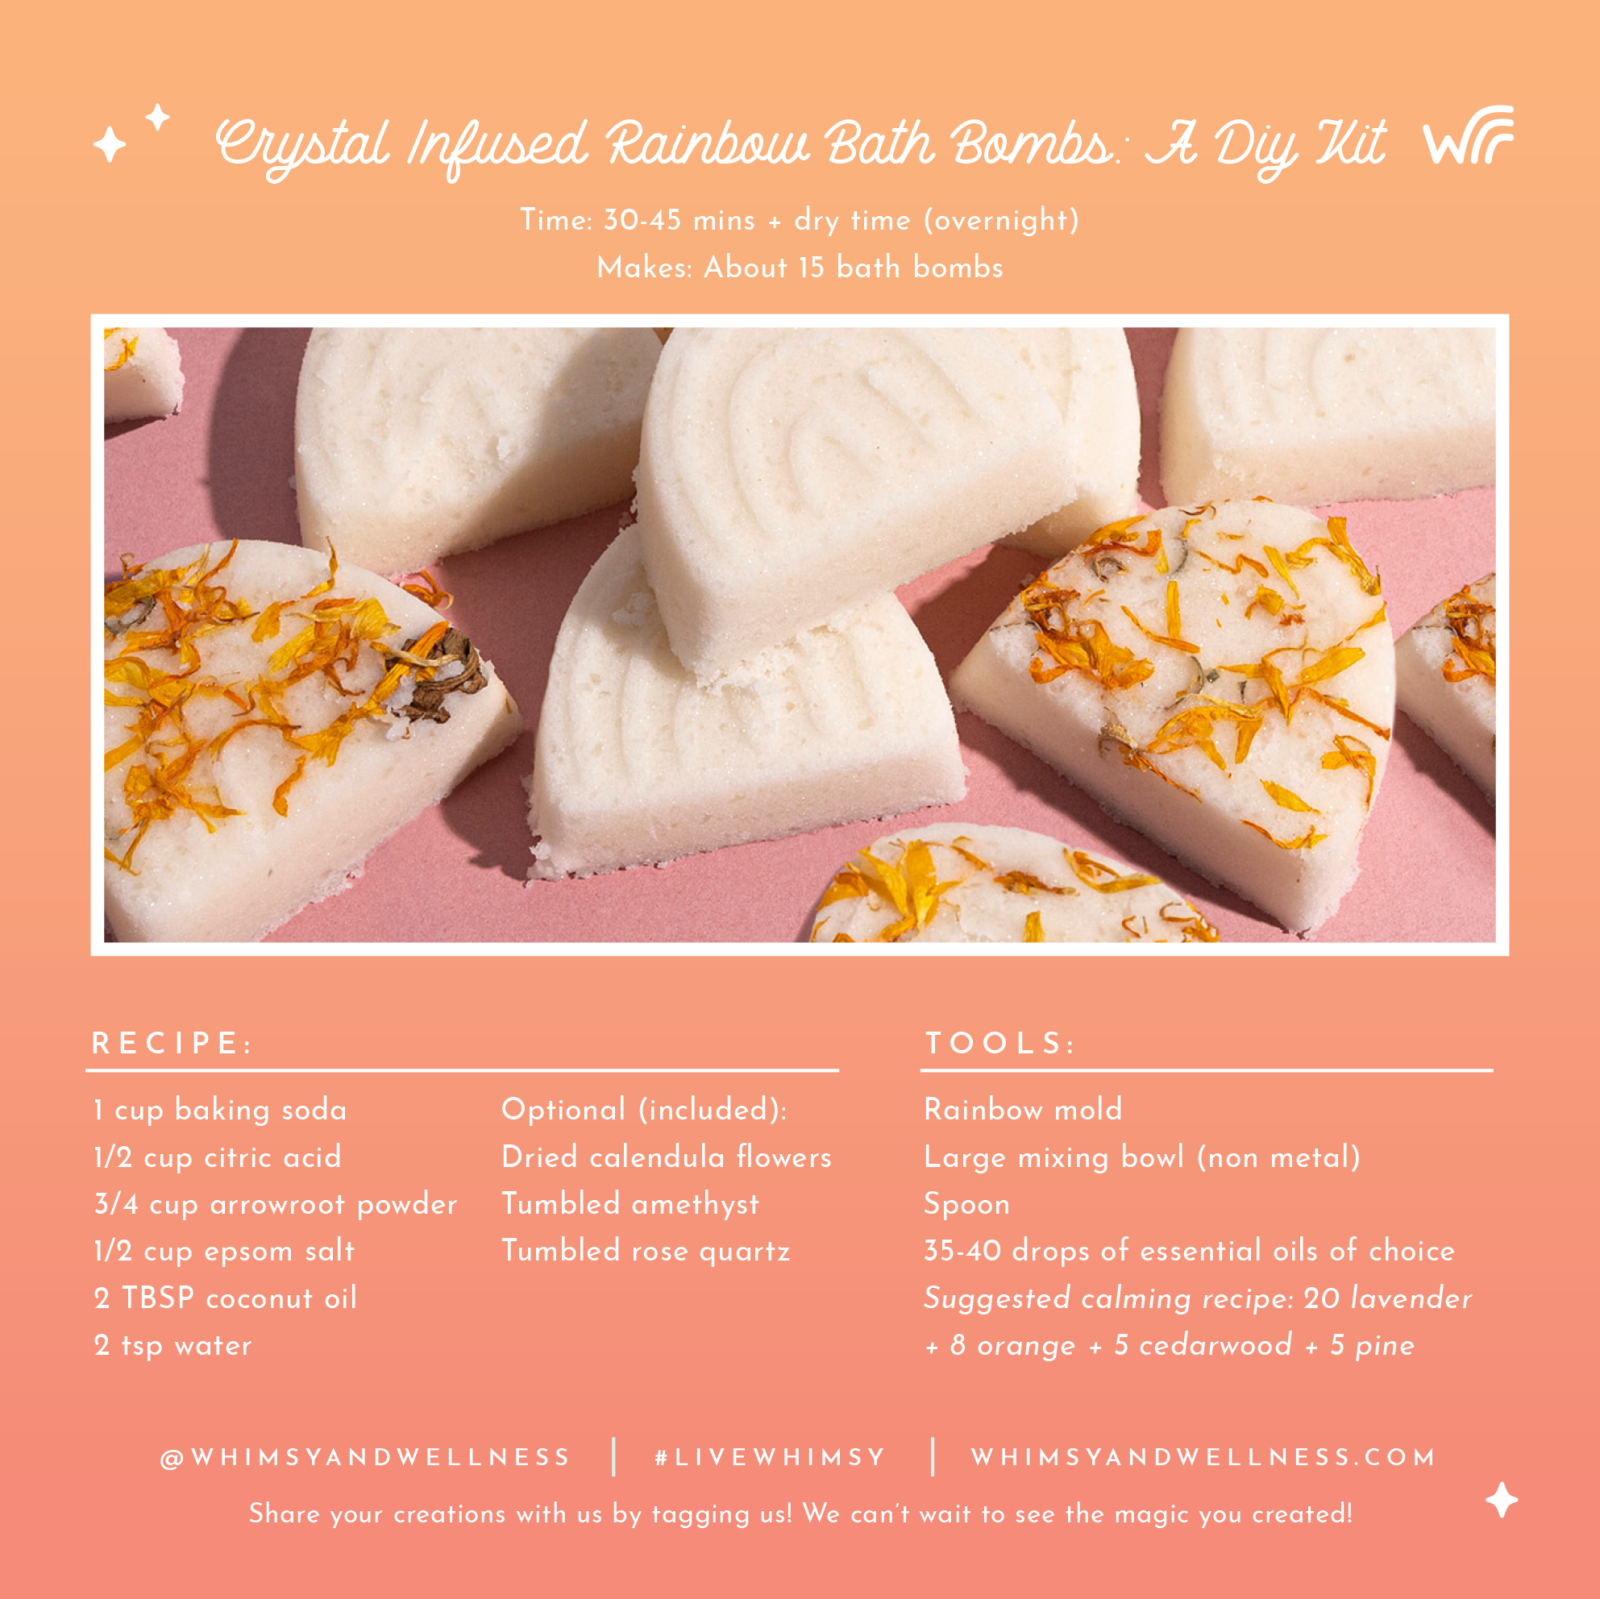 Step by Step Instructions to make bath bombs with the whimsy + wellness DIY kit